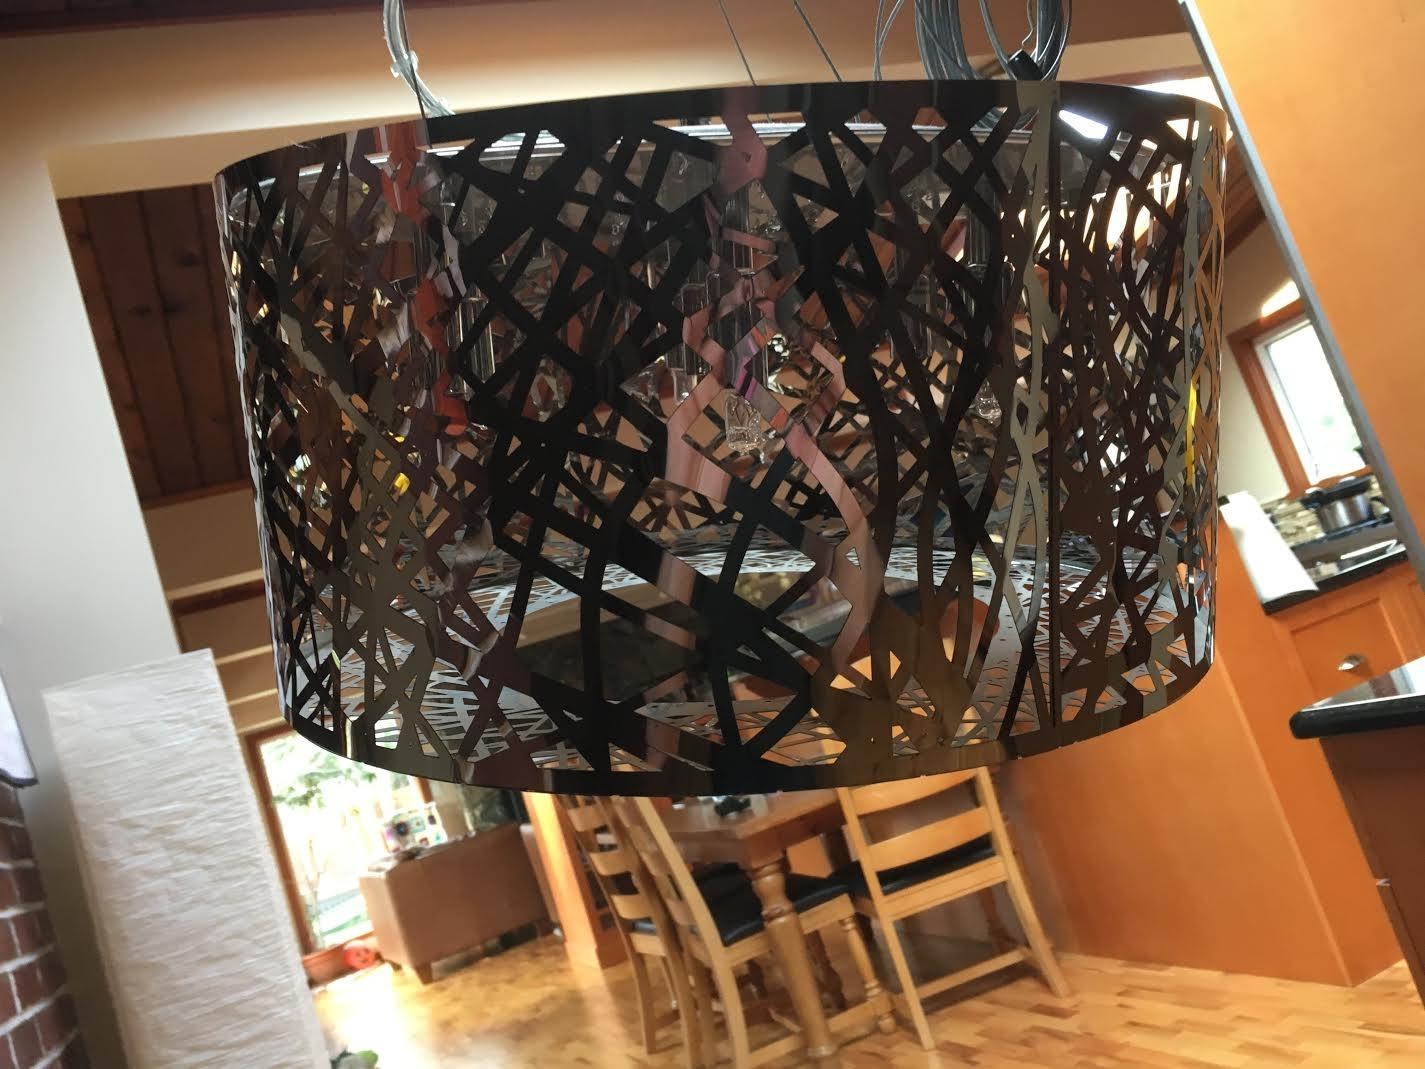 Best amazing chrome dining room light fixture for sale in victoria british columbia for 2019